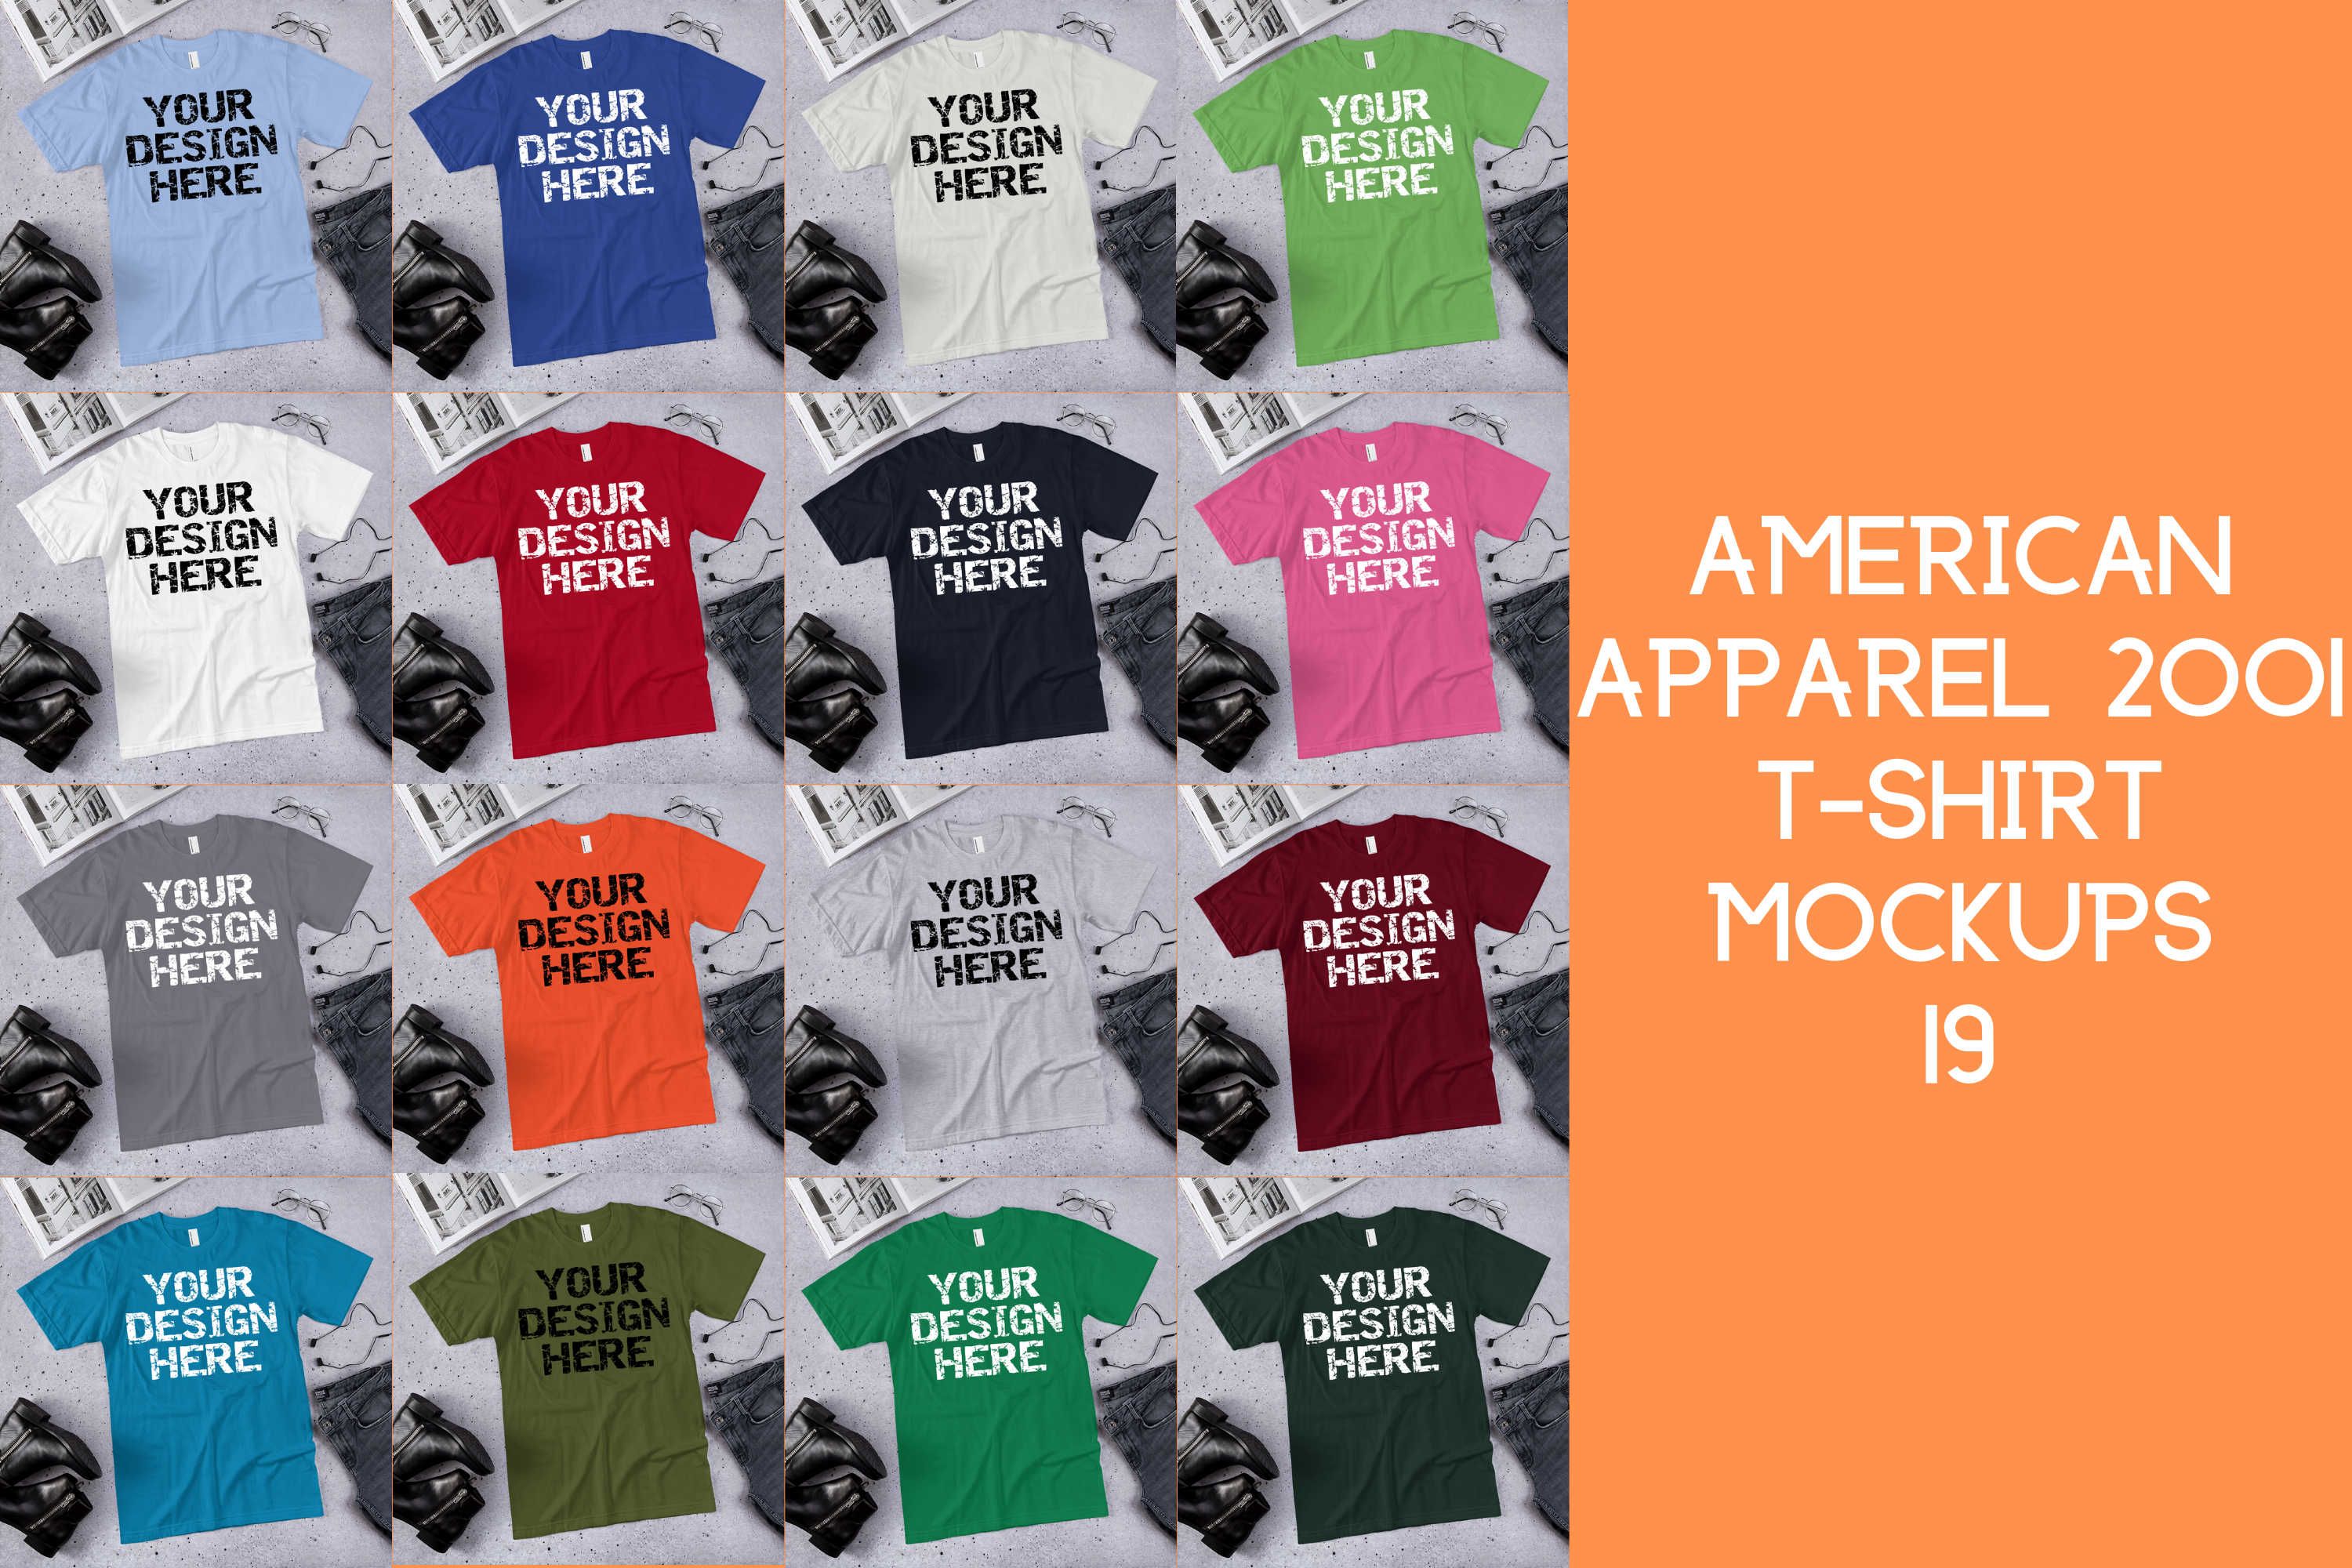 Download Free American Apparel 2001 Tshirt Mock Ups 19 Graphic By Mockup Venue for Cricut Explore, Silhouette and other cutting machines.